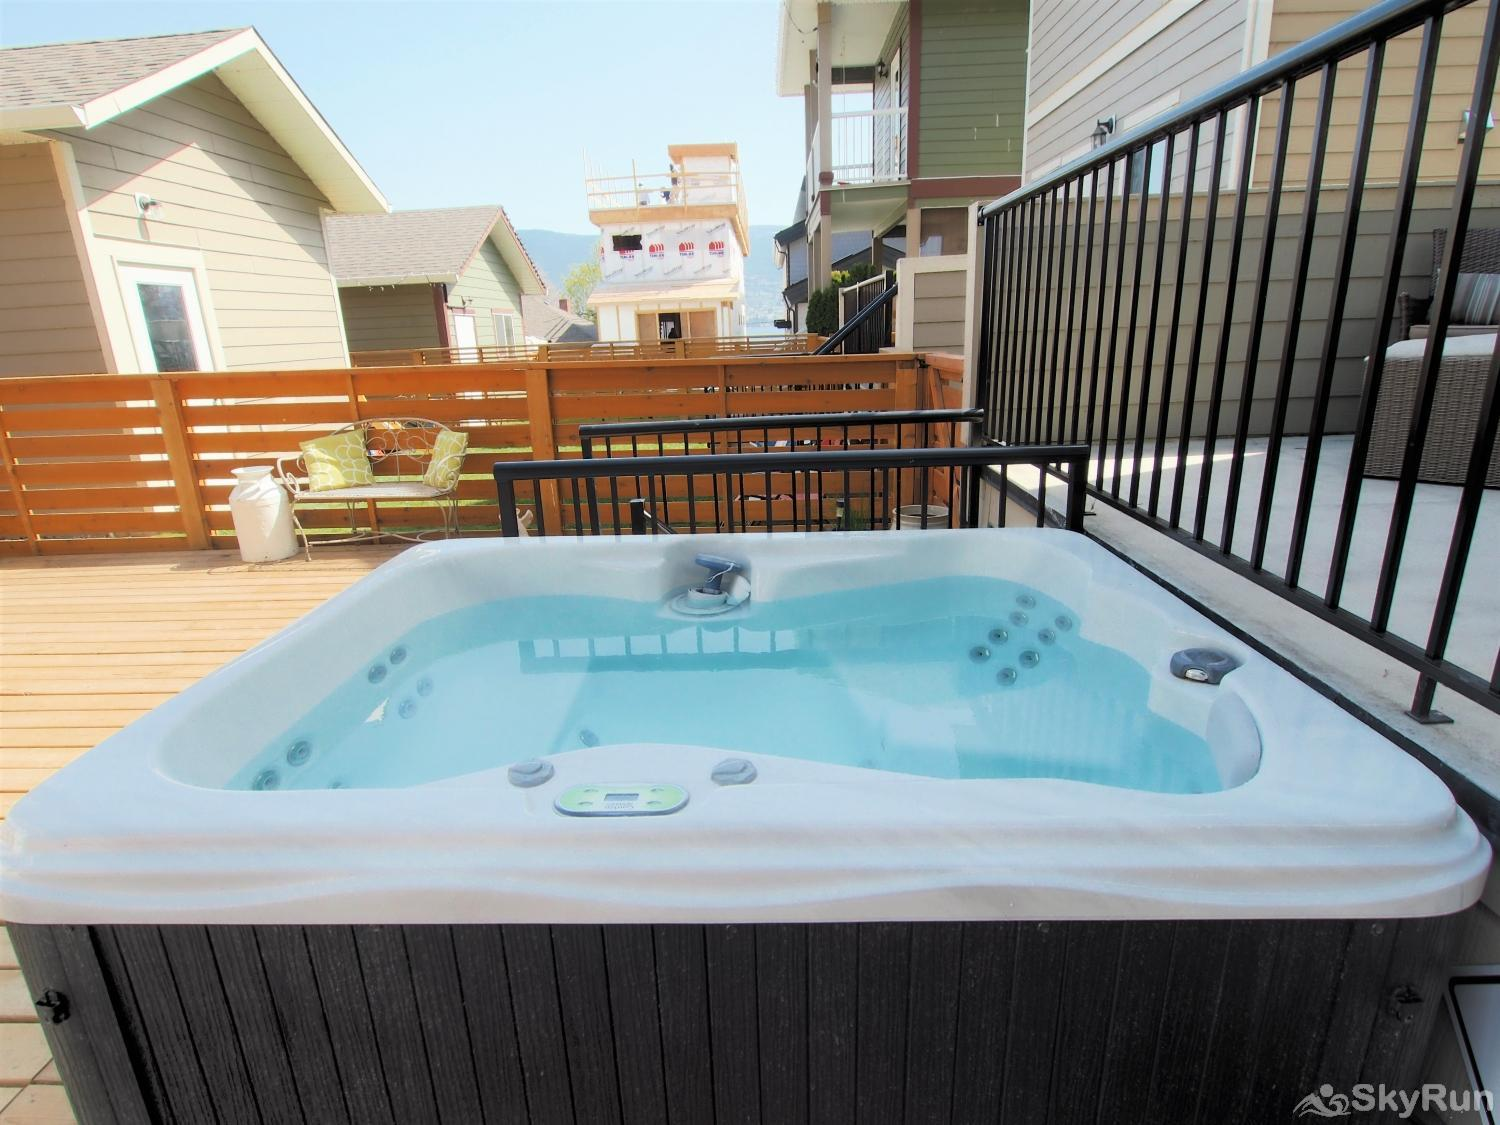 Old Summerland 3 bedroom home Nothing better than relaxing in this amazing hot tub